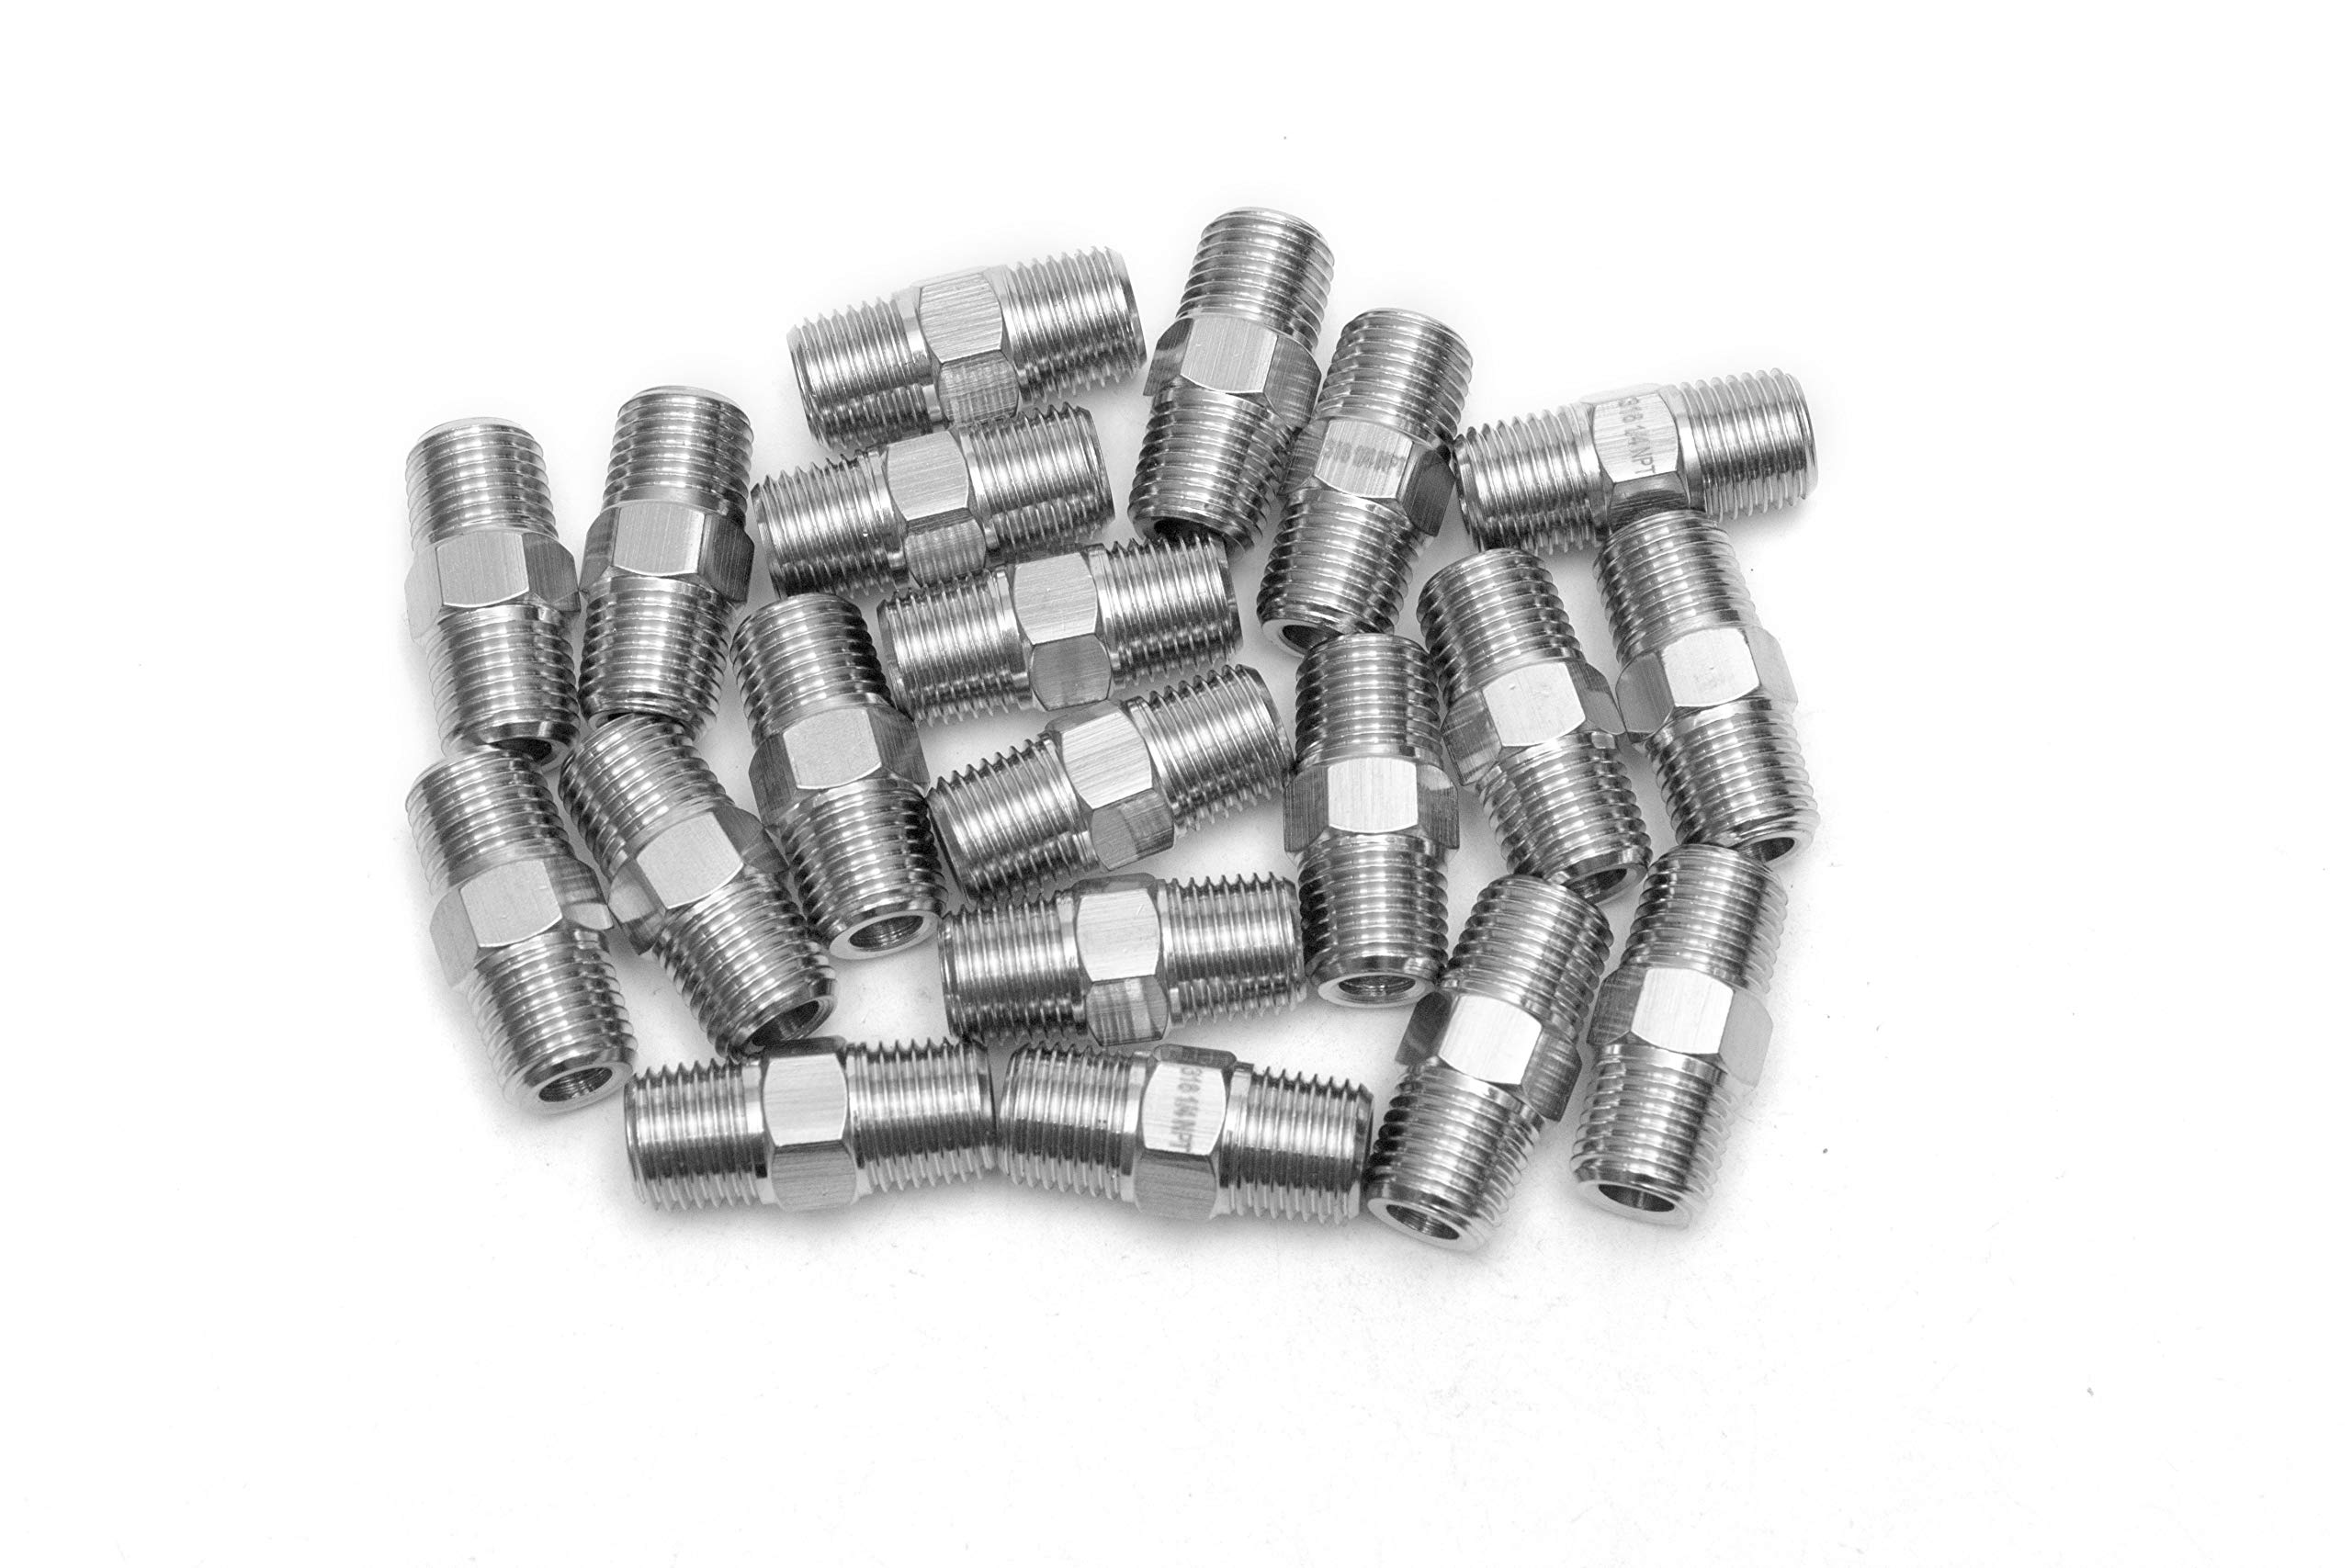 LTWFITTING Class 3000 Stainless Steel 316 Pipe Hex Nipple Fitting 1/4'' Male NPT Air Fuel Water (Pack of 20)